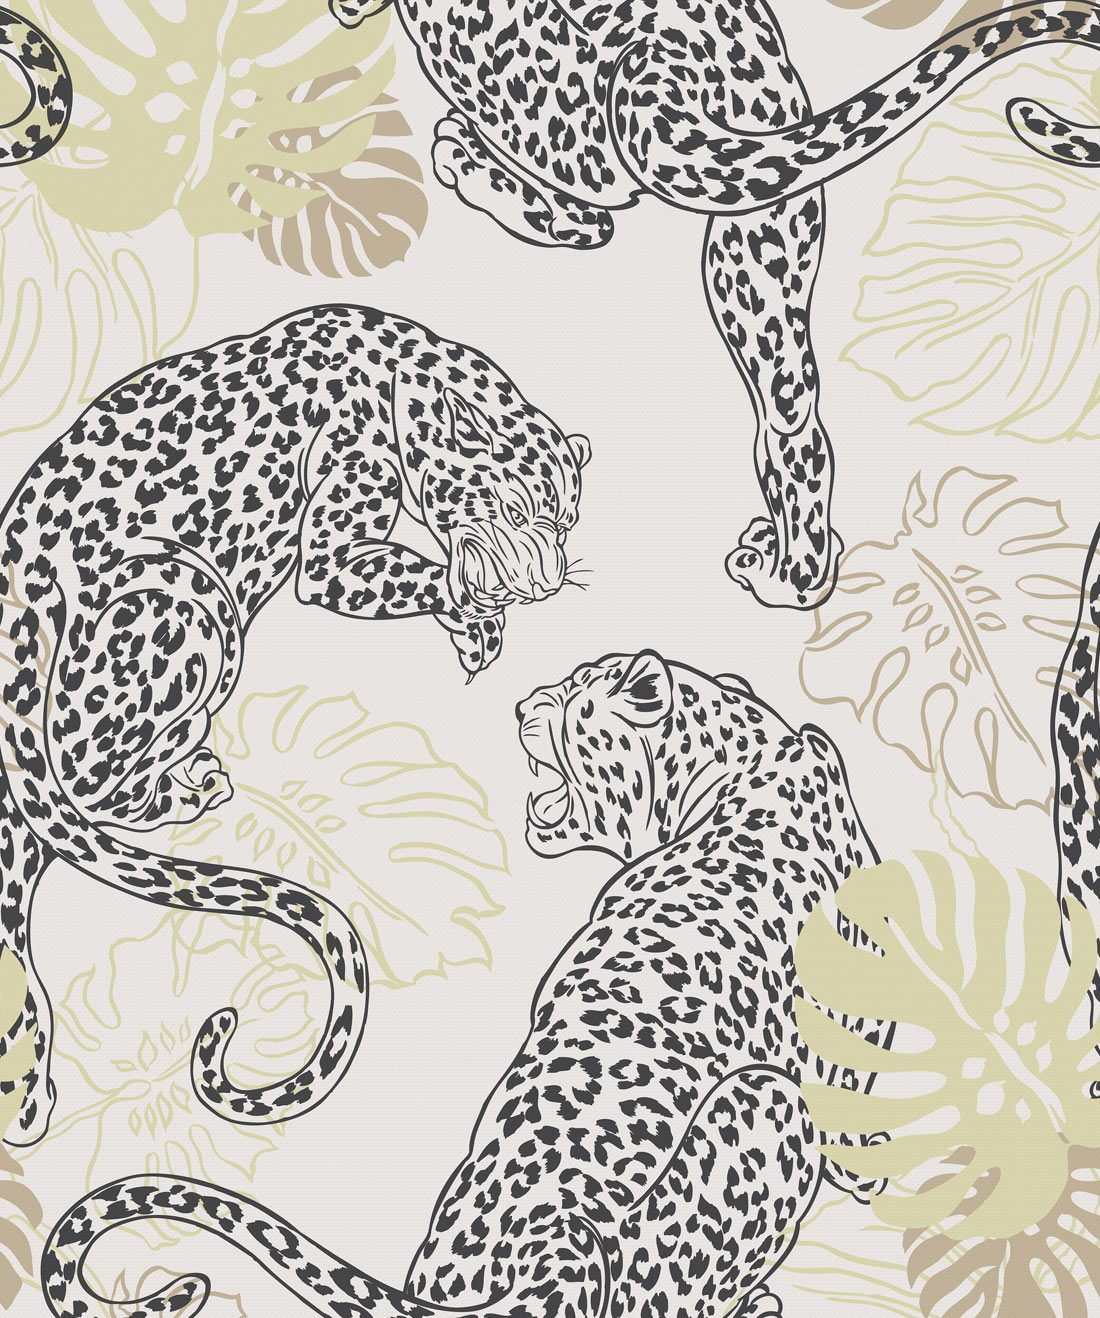 Leopard Jungle